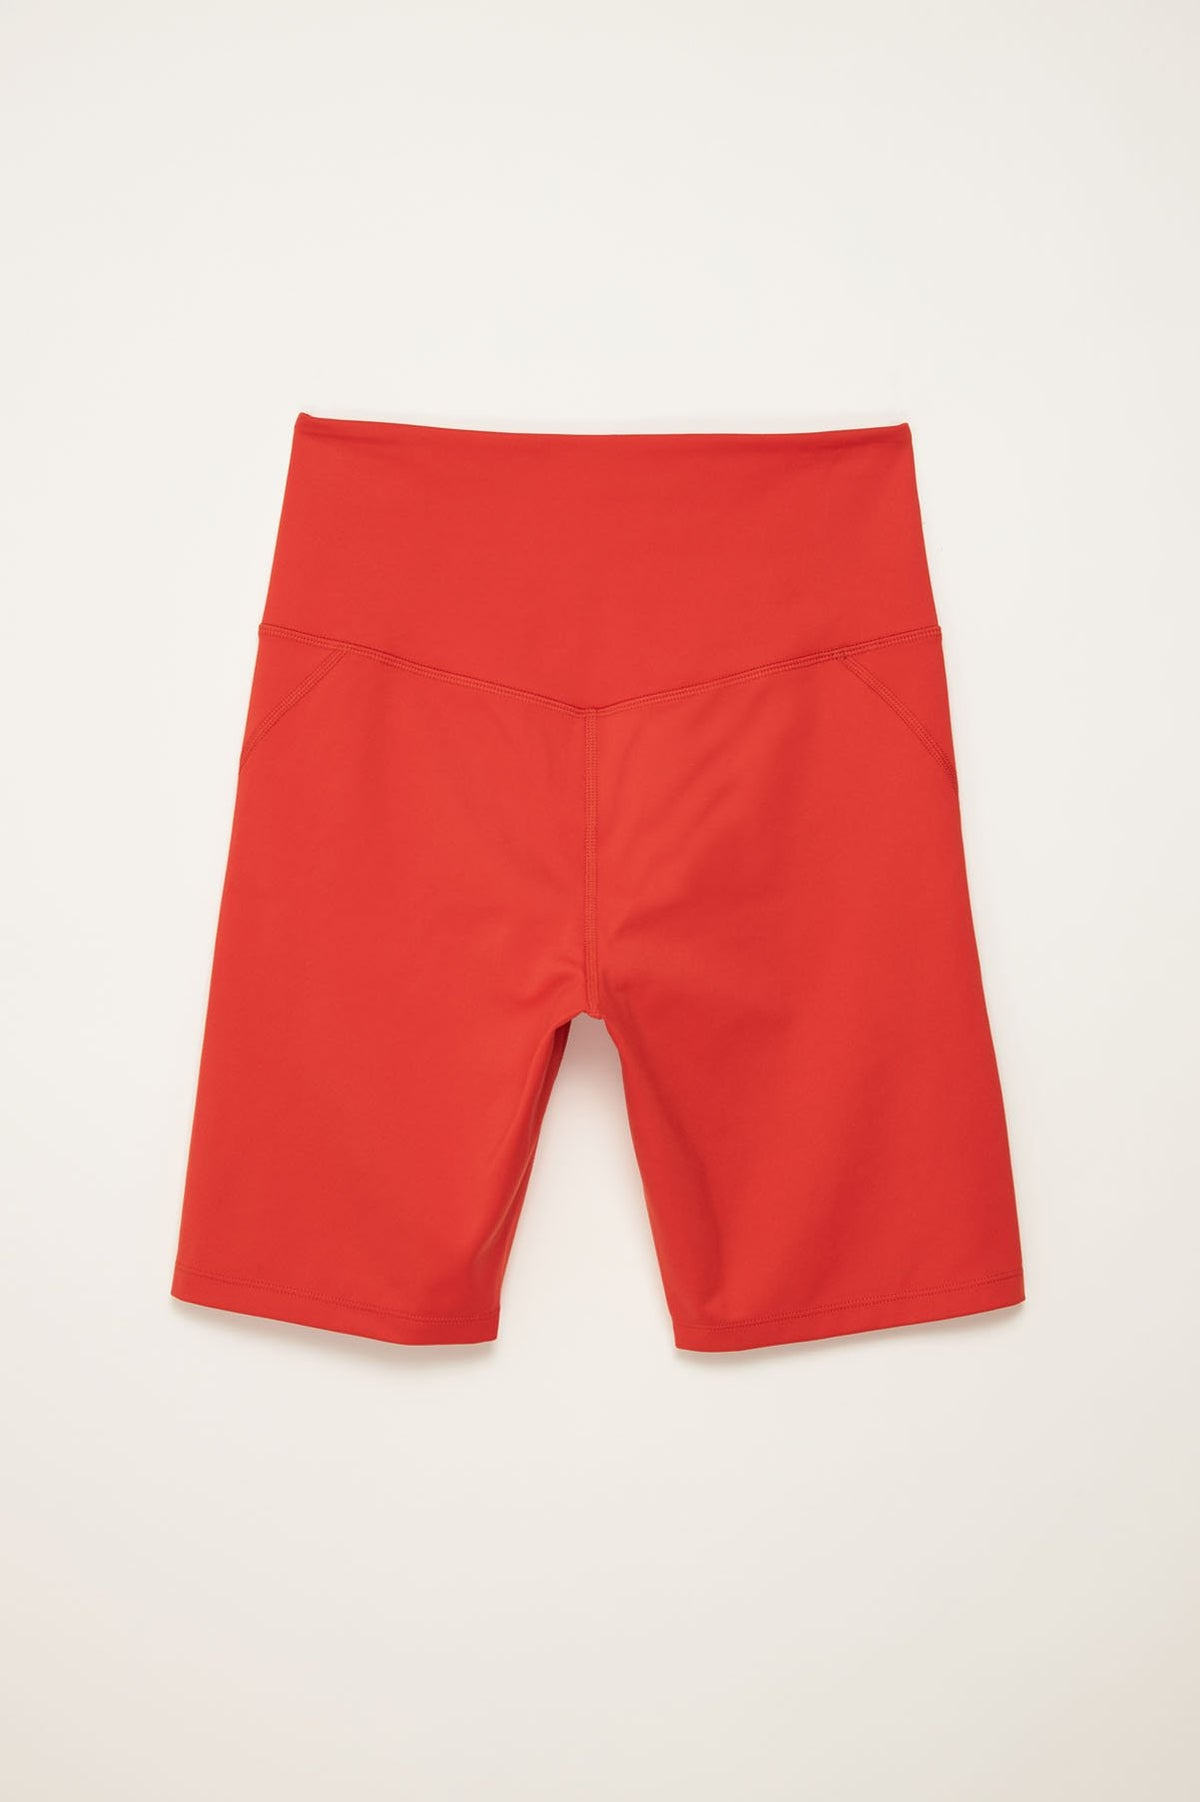 Tart High-Rise Bike Short